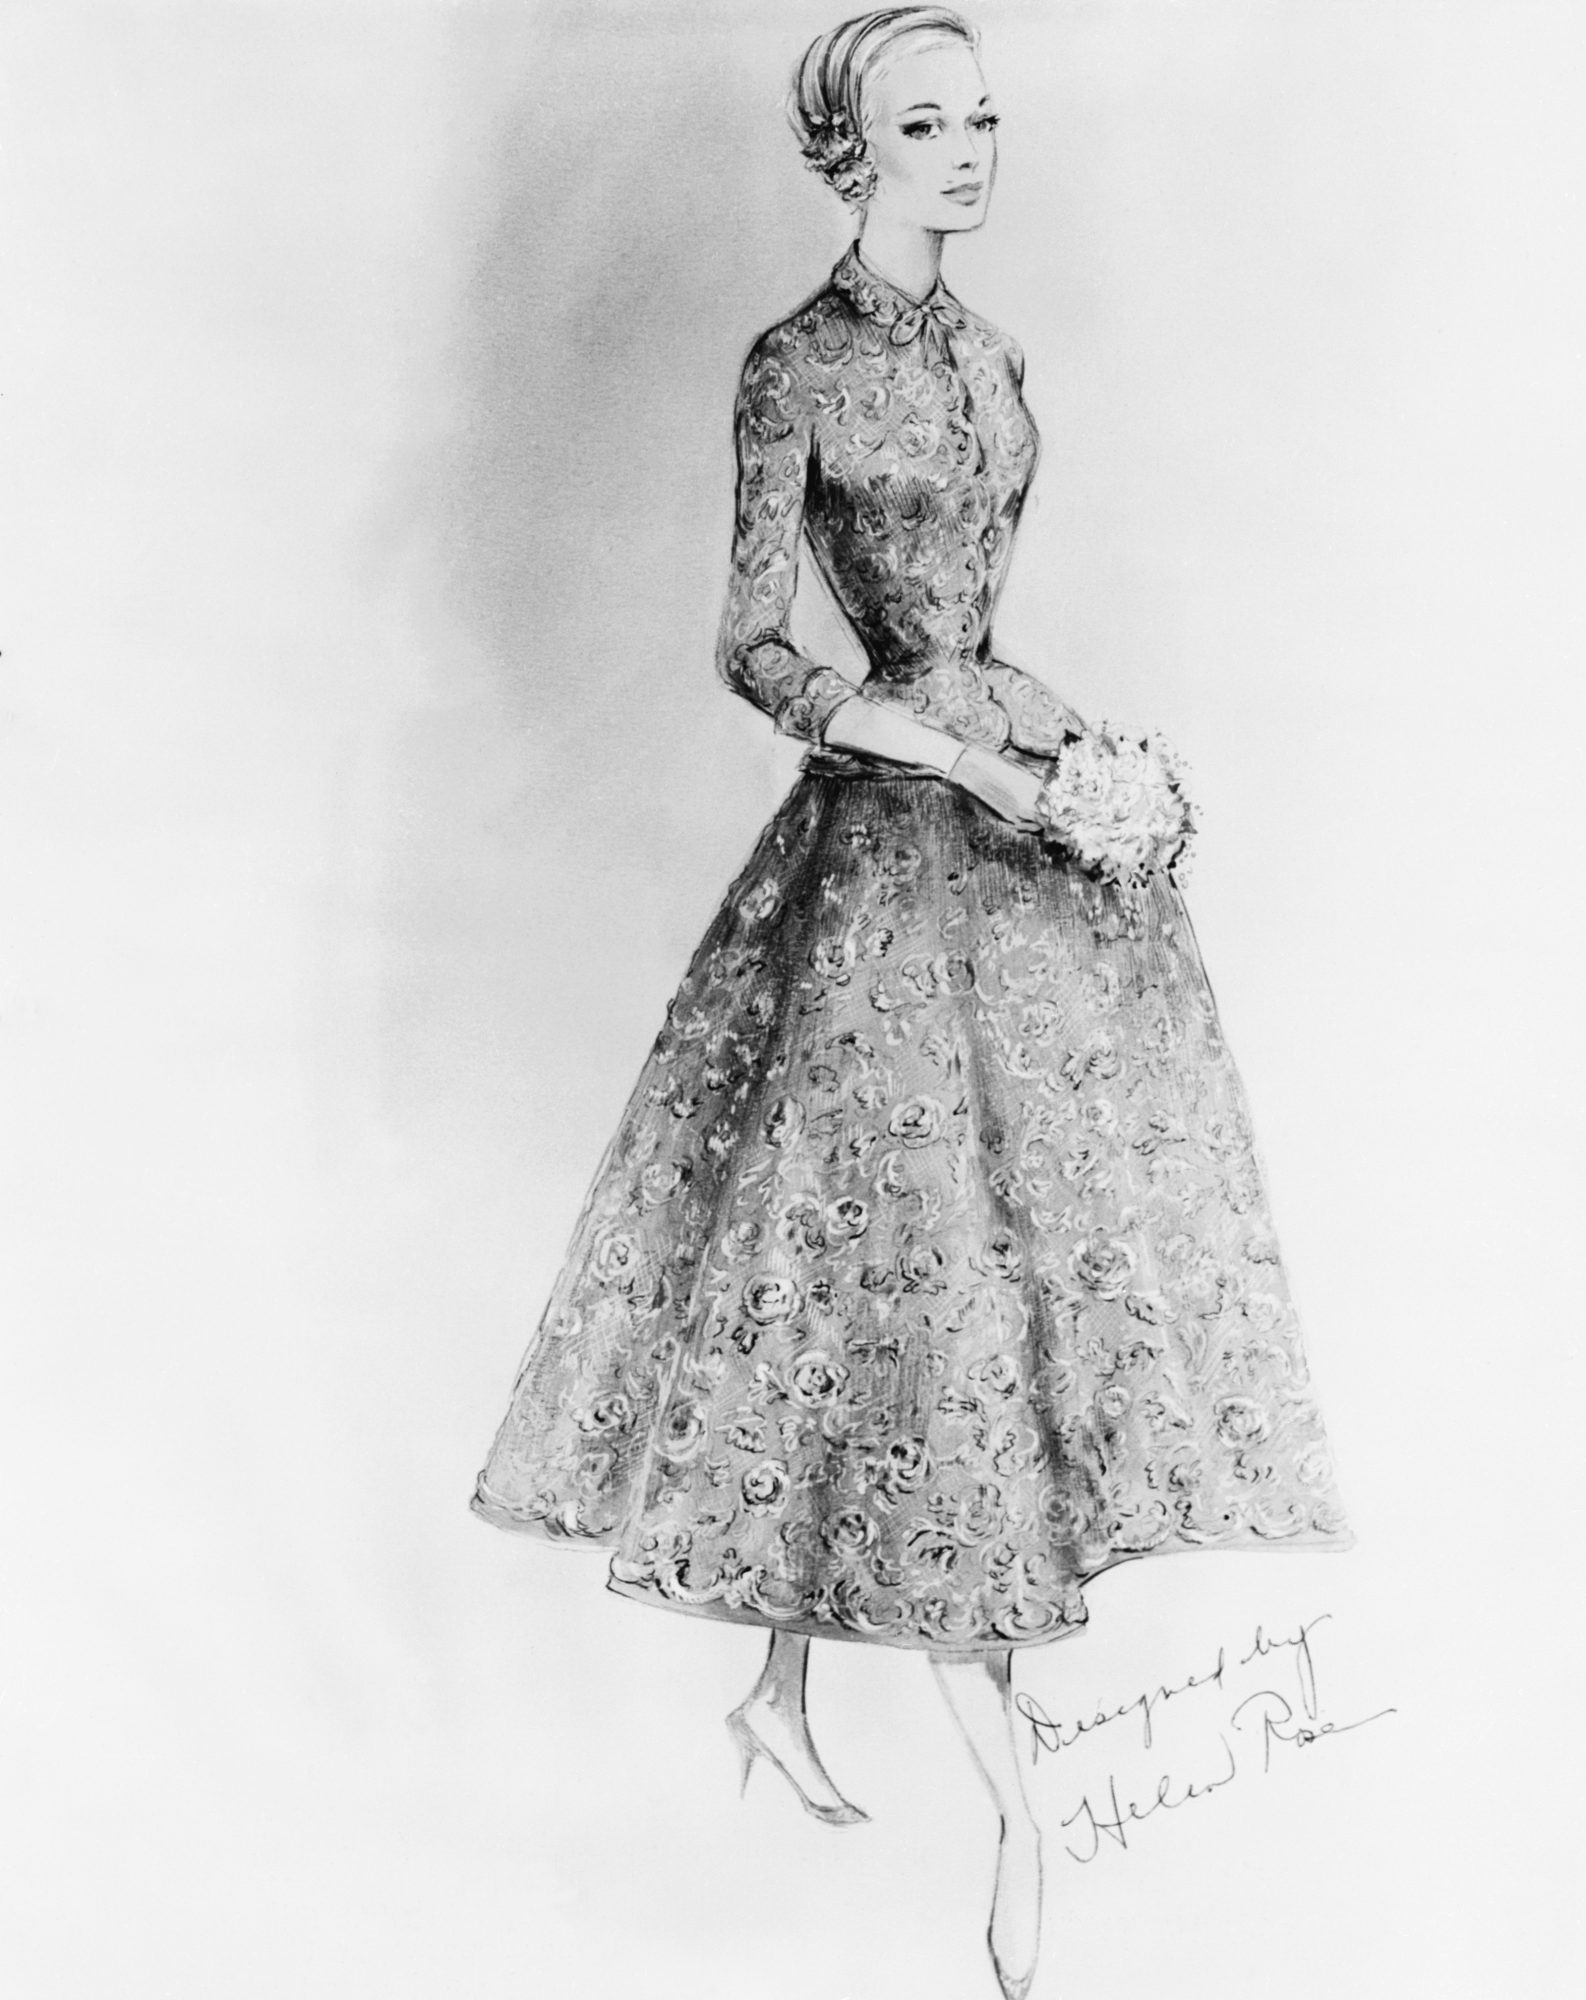 Grace Kelly Civil Ceremony Suit Sketch